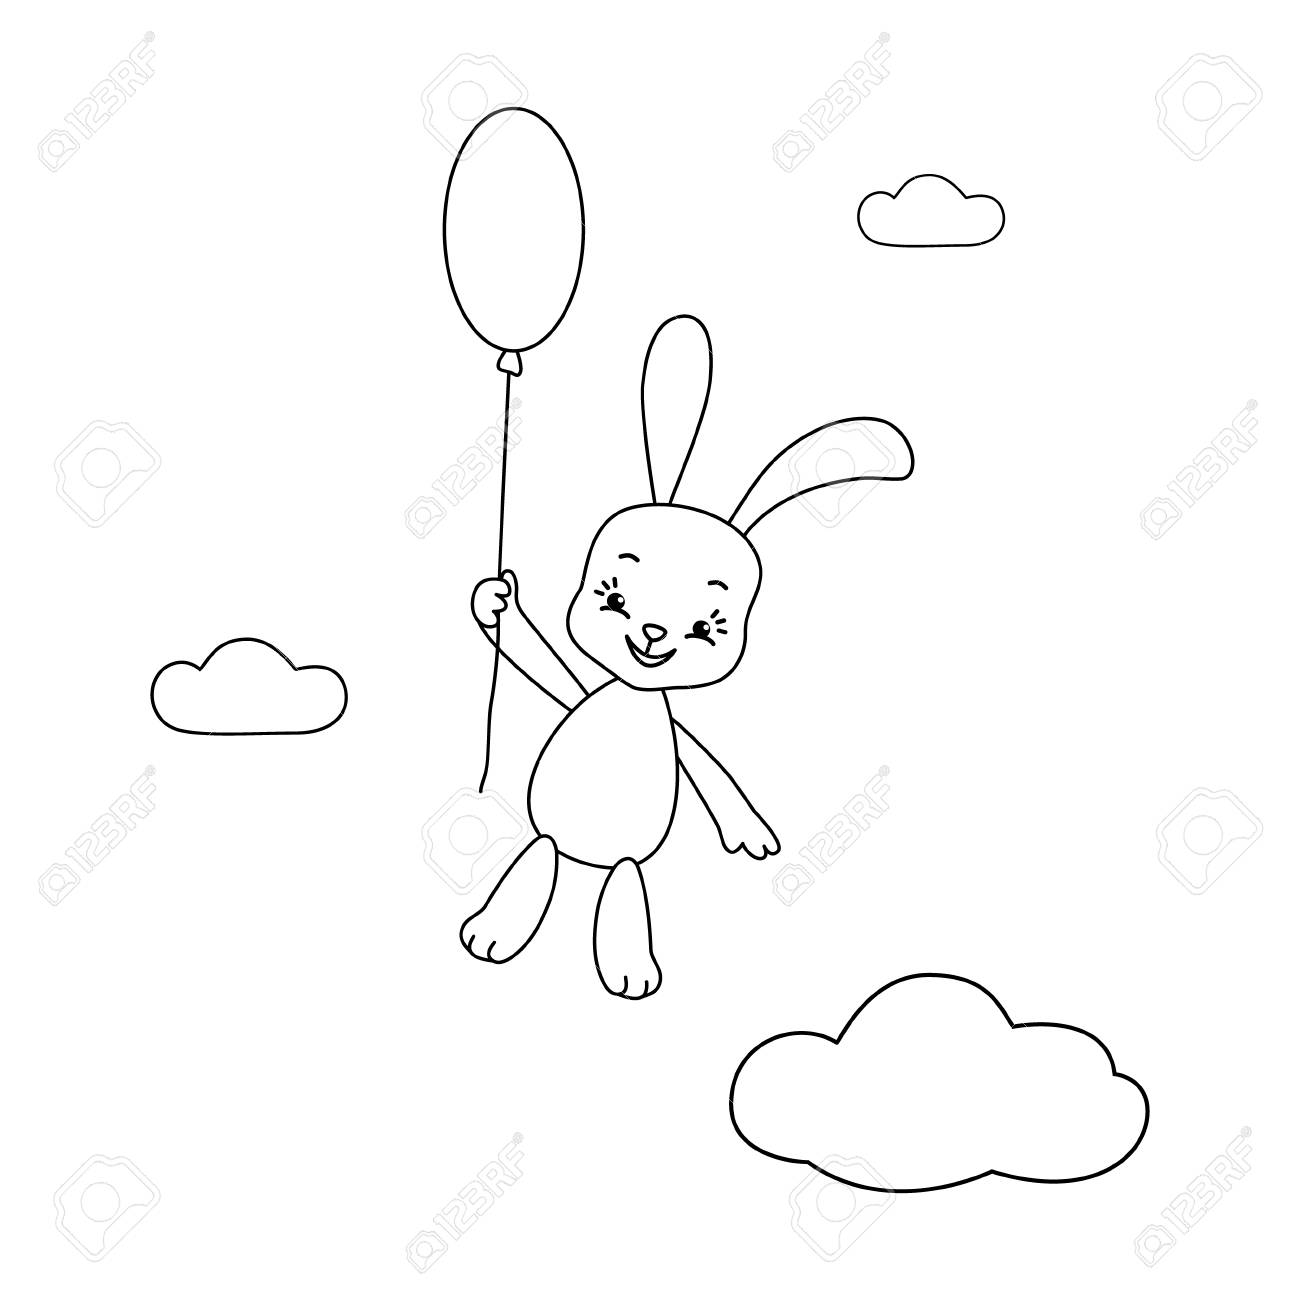 coloring page vector illustration of cute bunny with balloon